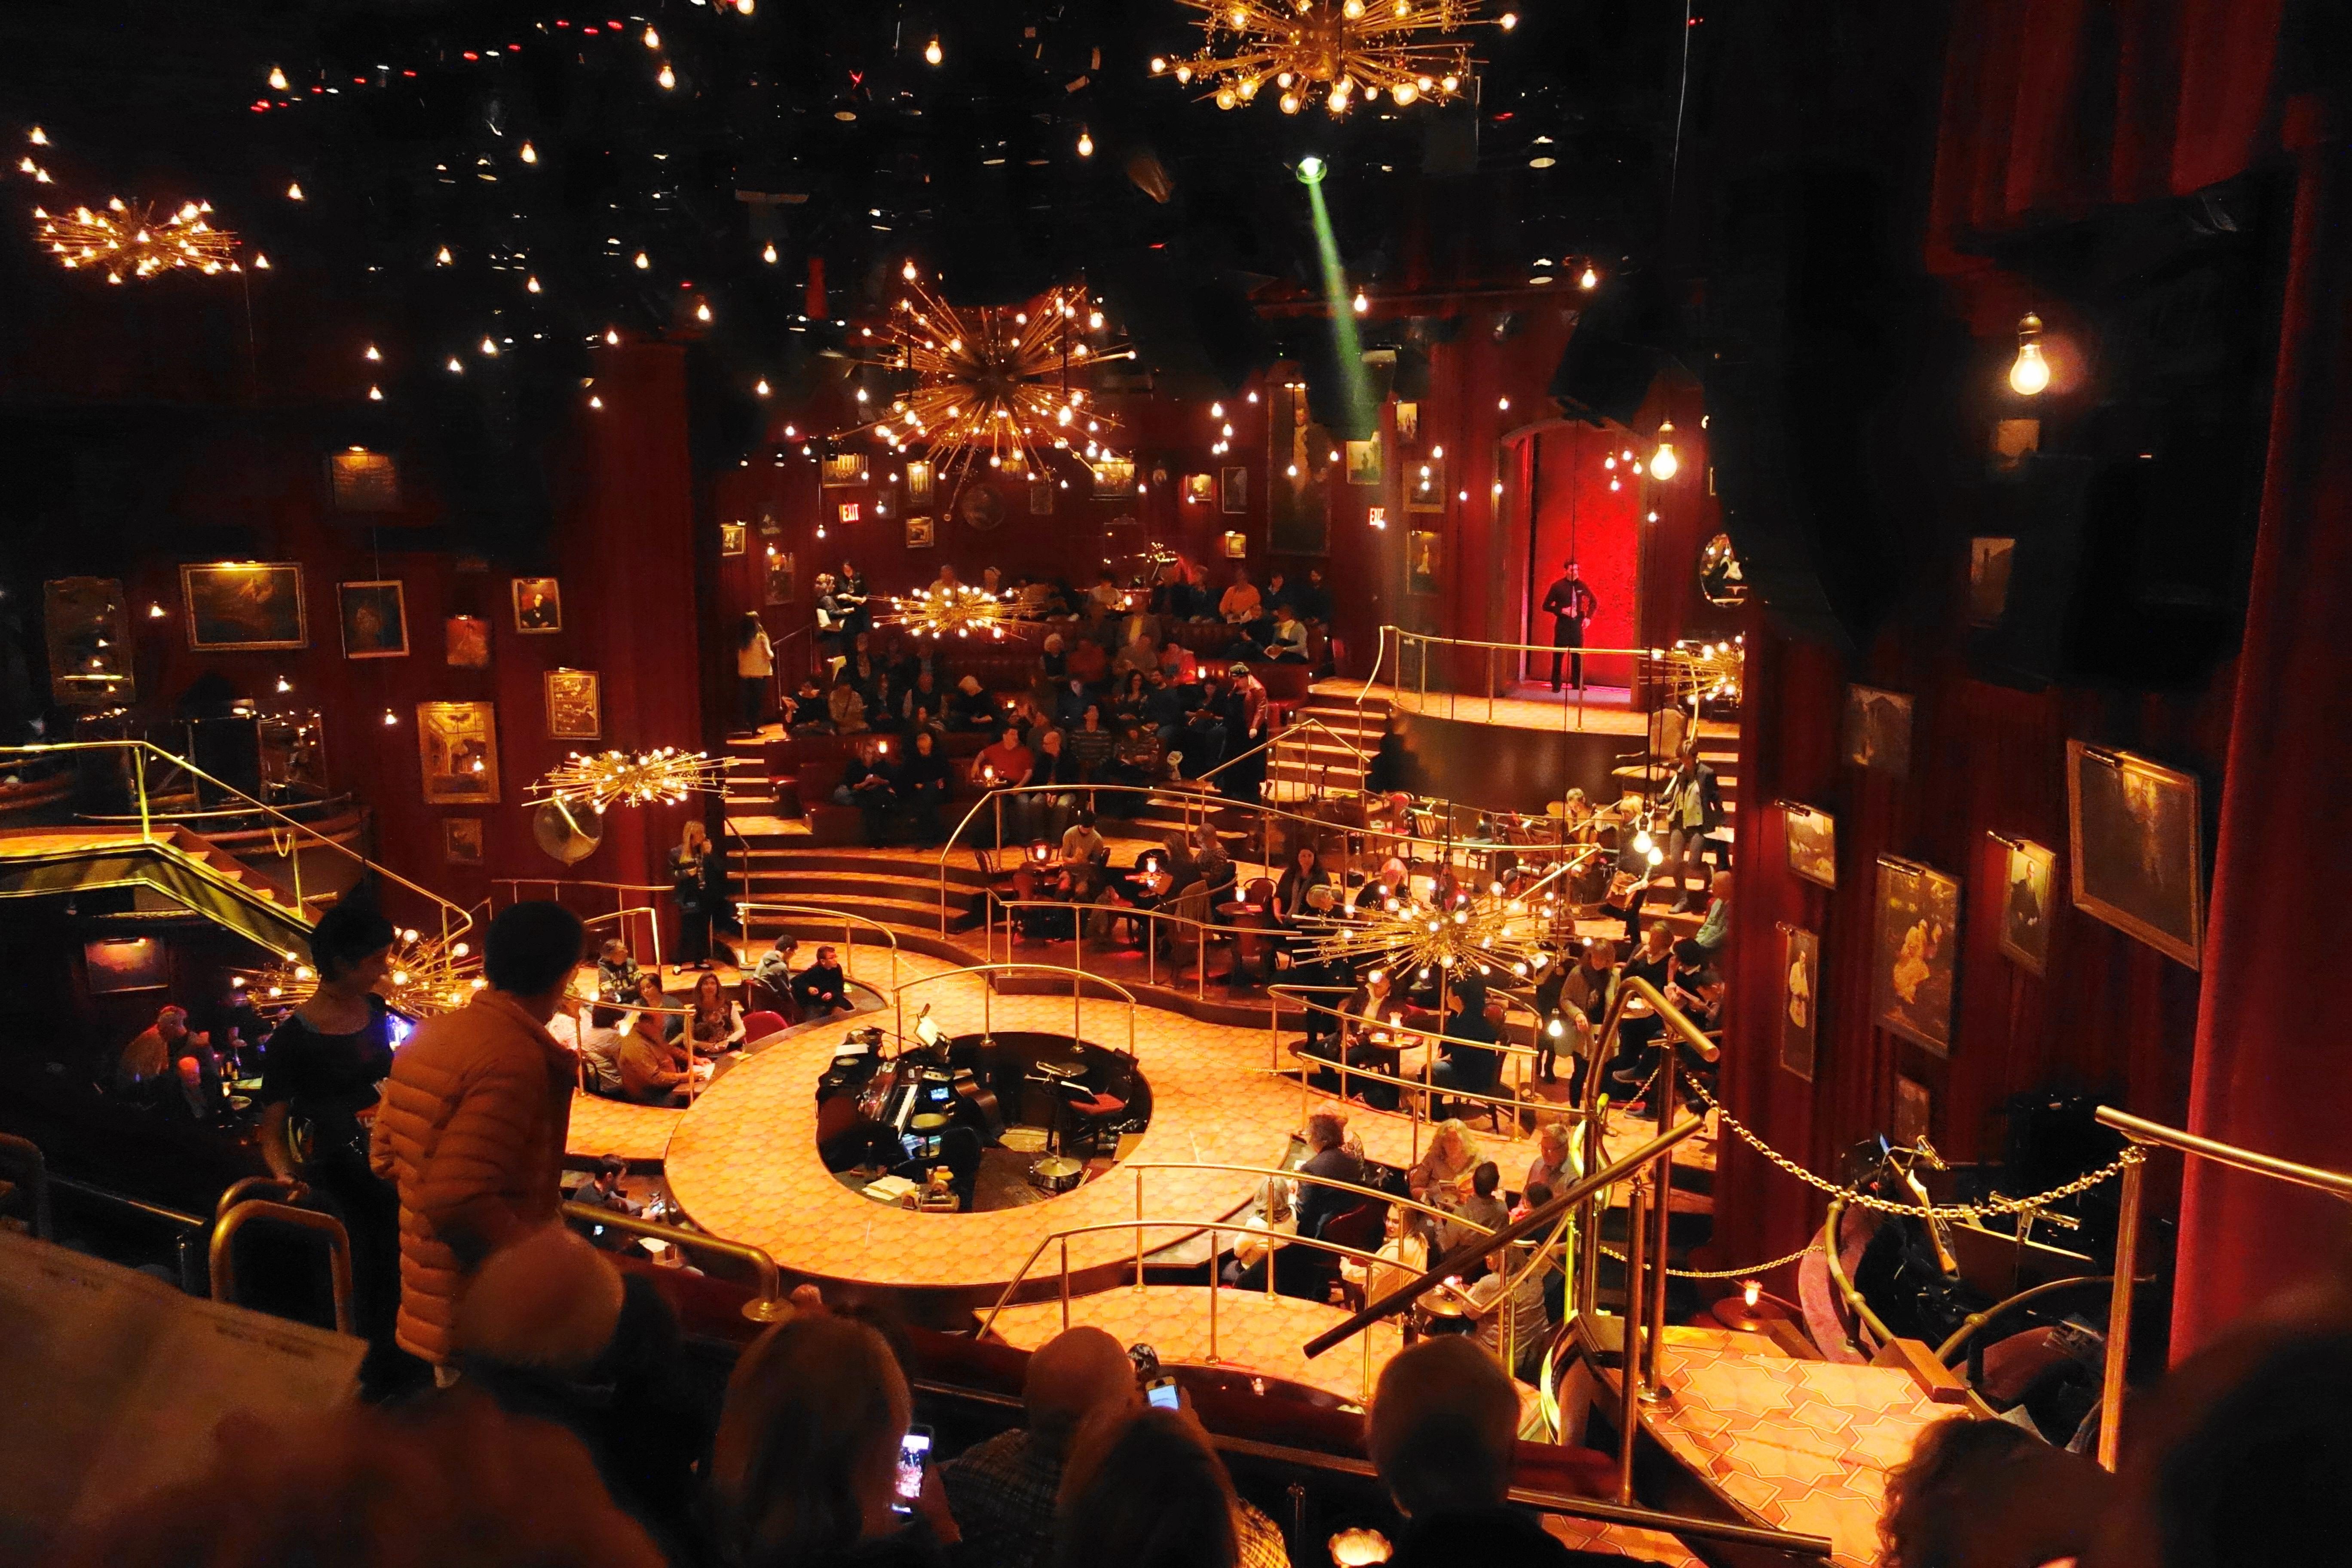 Imperial Theatre Section Front Mezzanine 1 Row E Seat 7